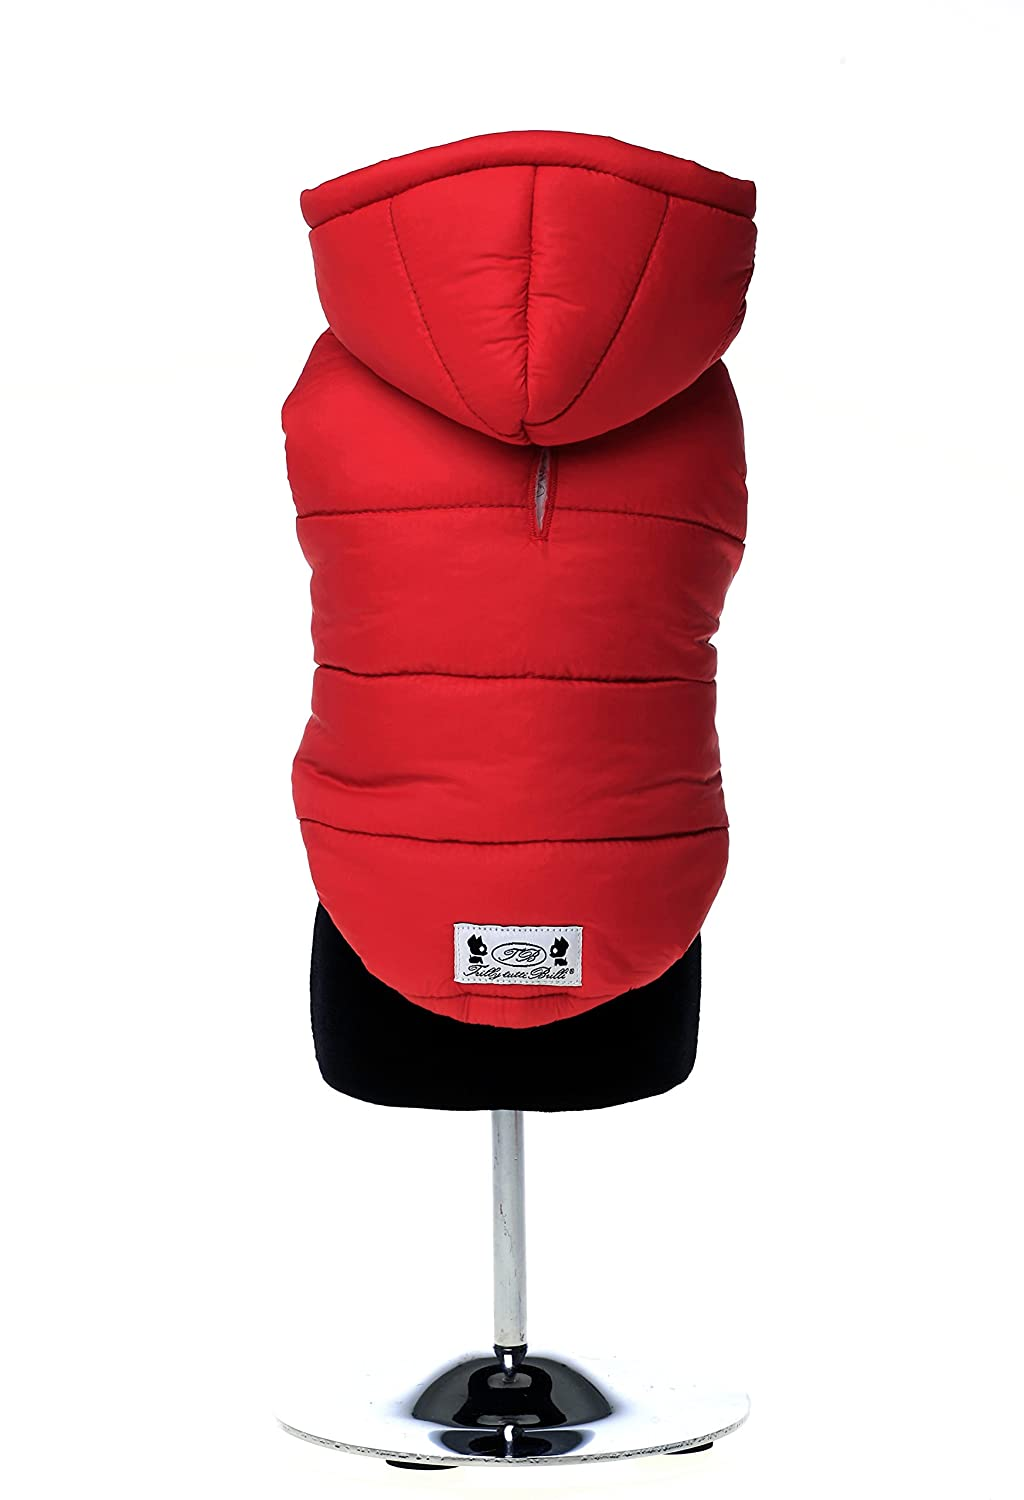 Red S M red S M Trilly tutti Brilli Claire Padded Dog's Jacket, Small Medium, Red